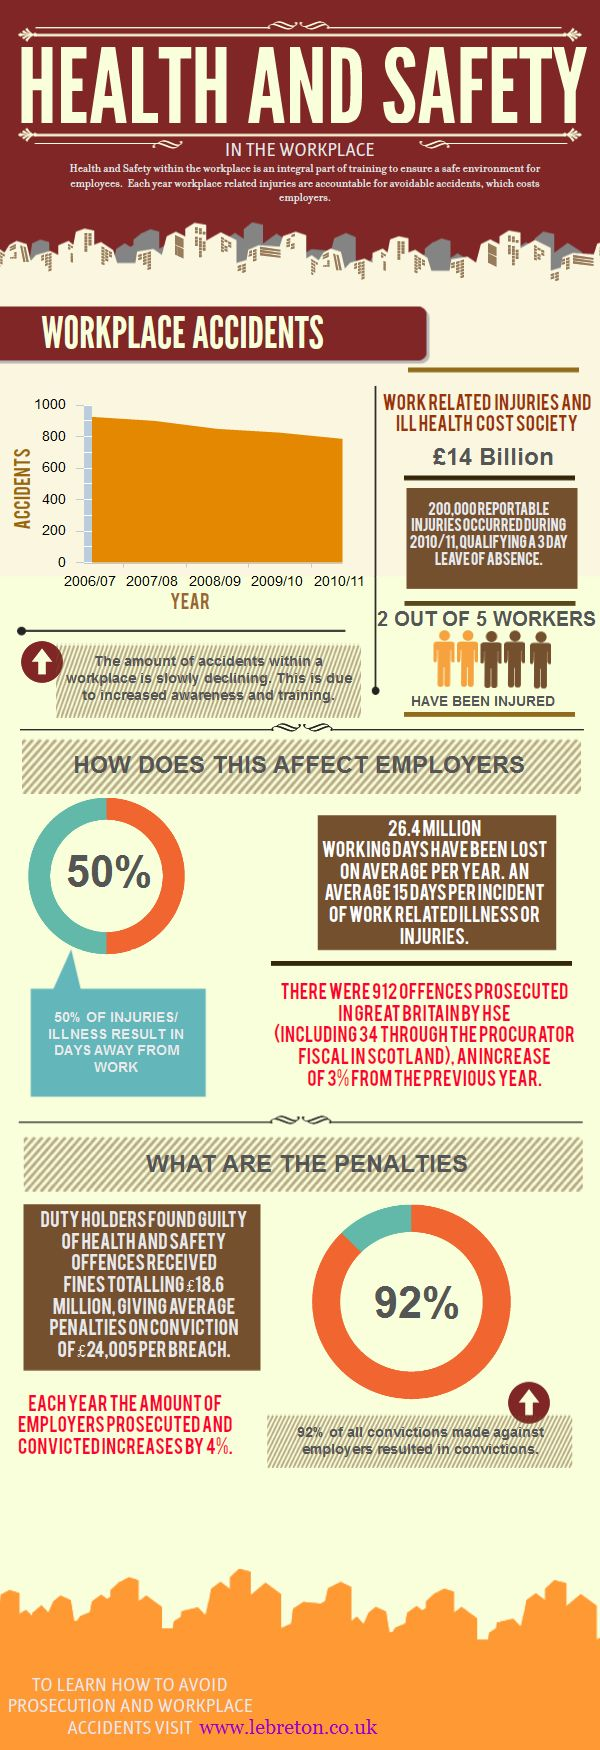 Health And Safety In The Workplace [INFOGRAPHIC]. Health and Safety CV writing services. www.brightcvs.com